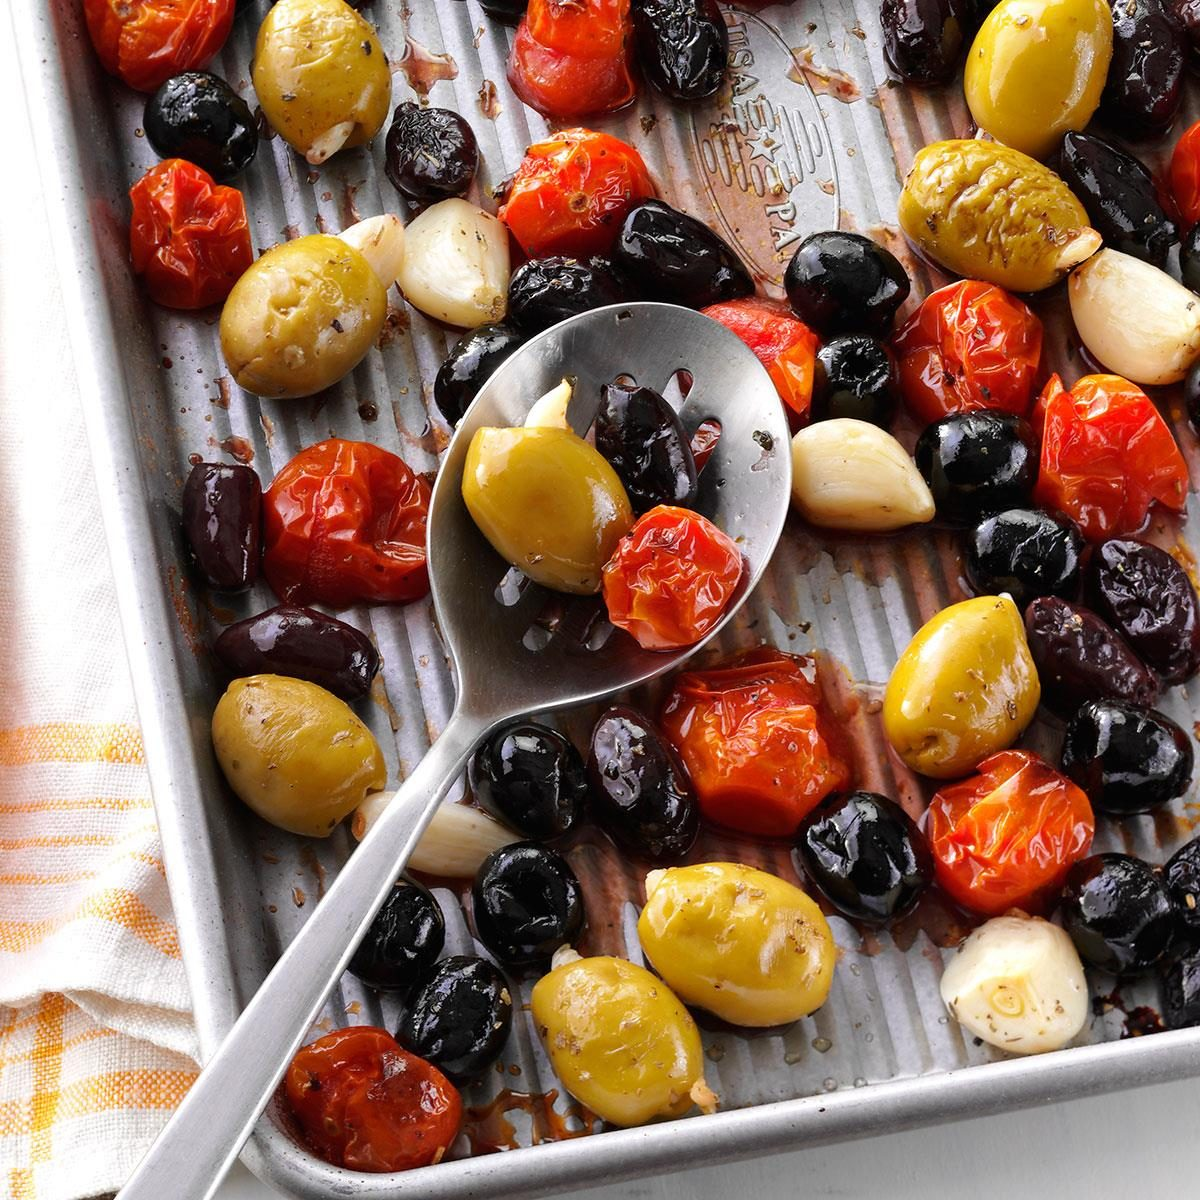 8 Benefits of Olives for Health and Wellness